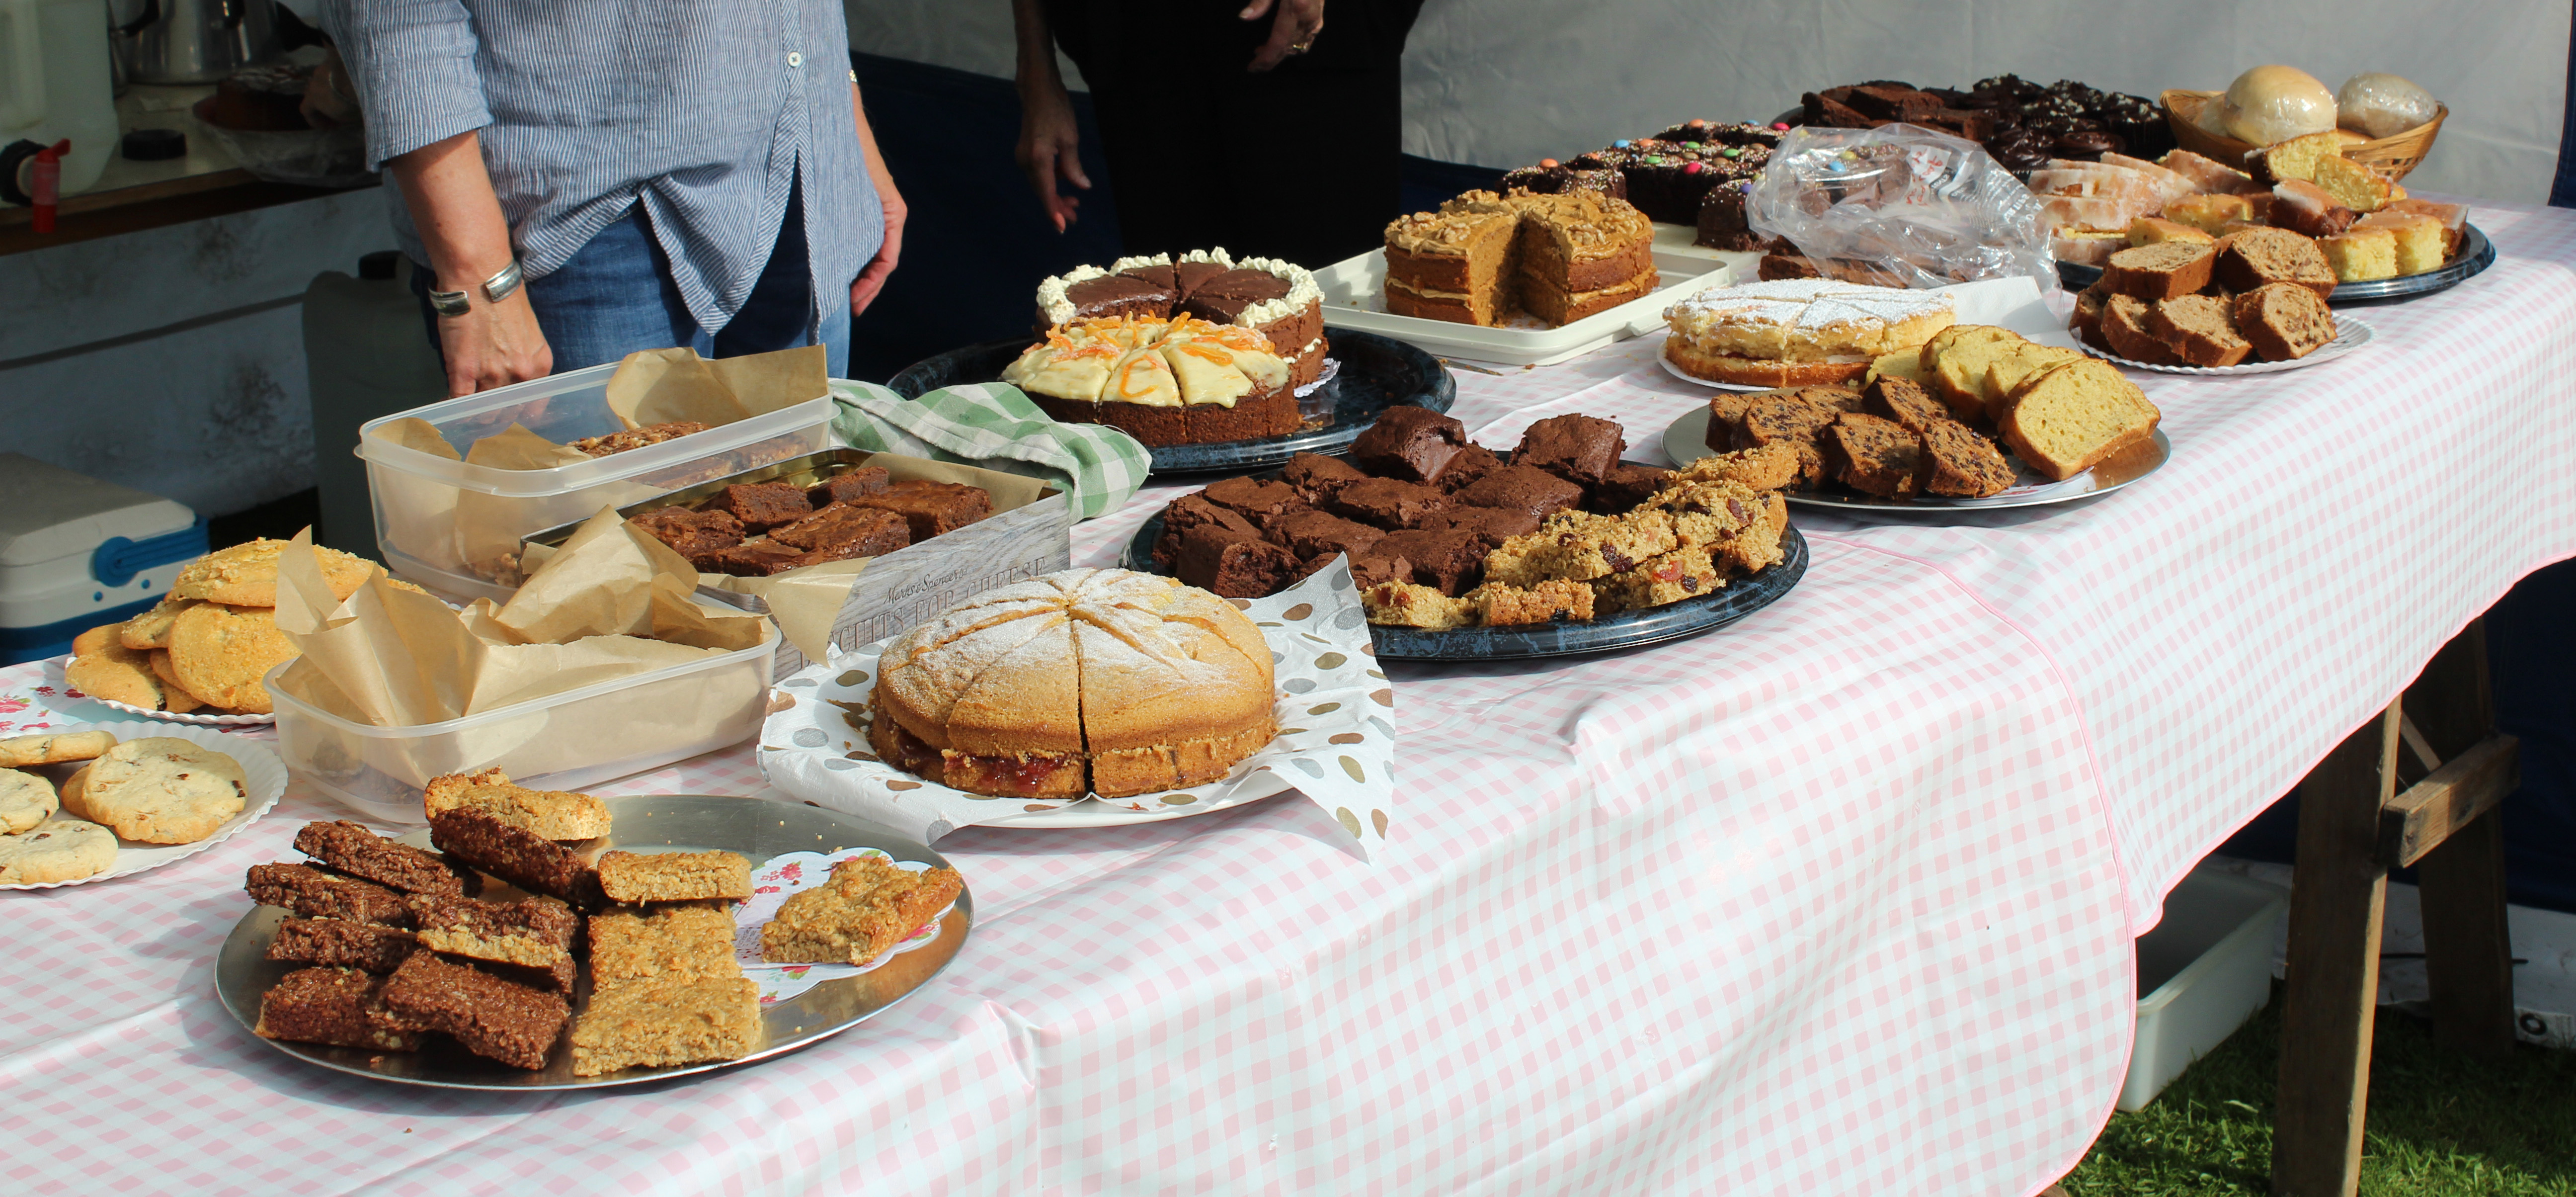 Sutton 10k cakes for sale